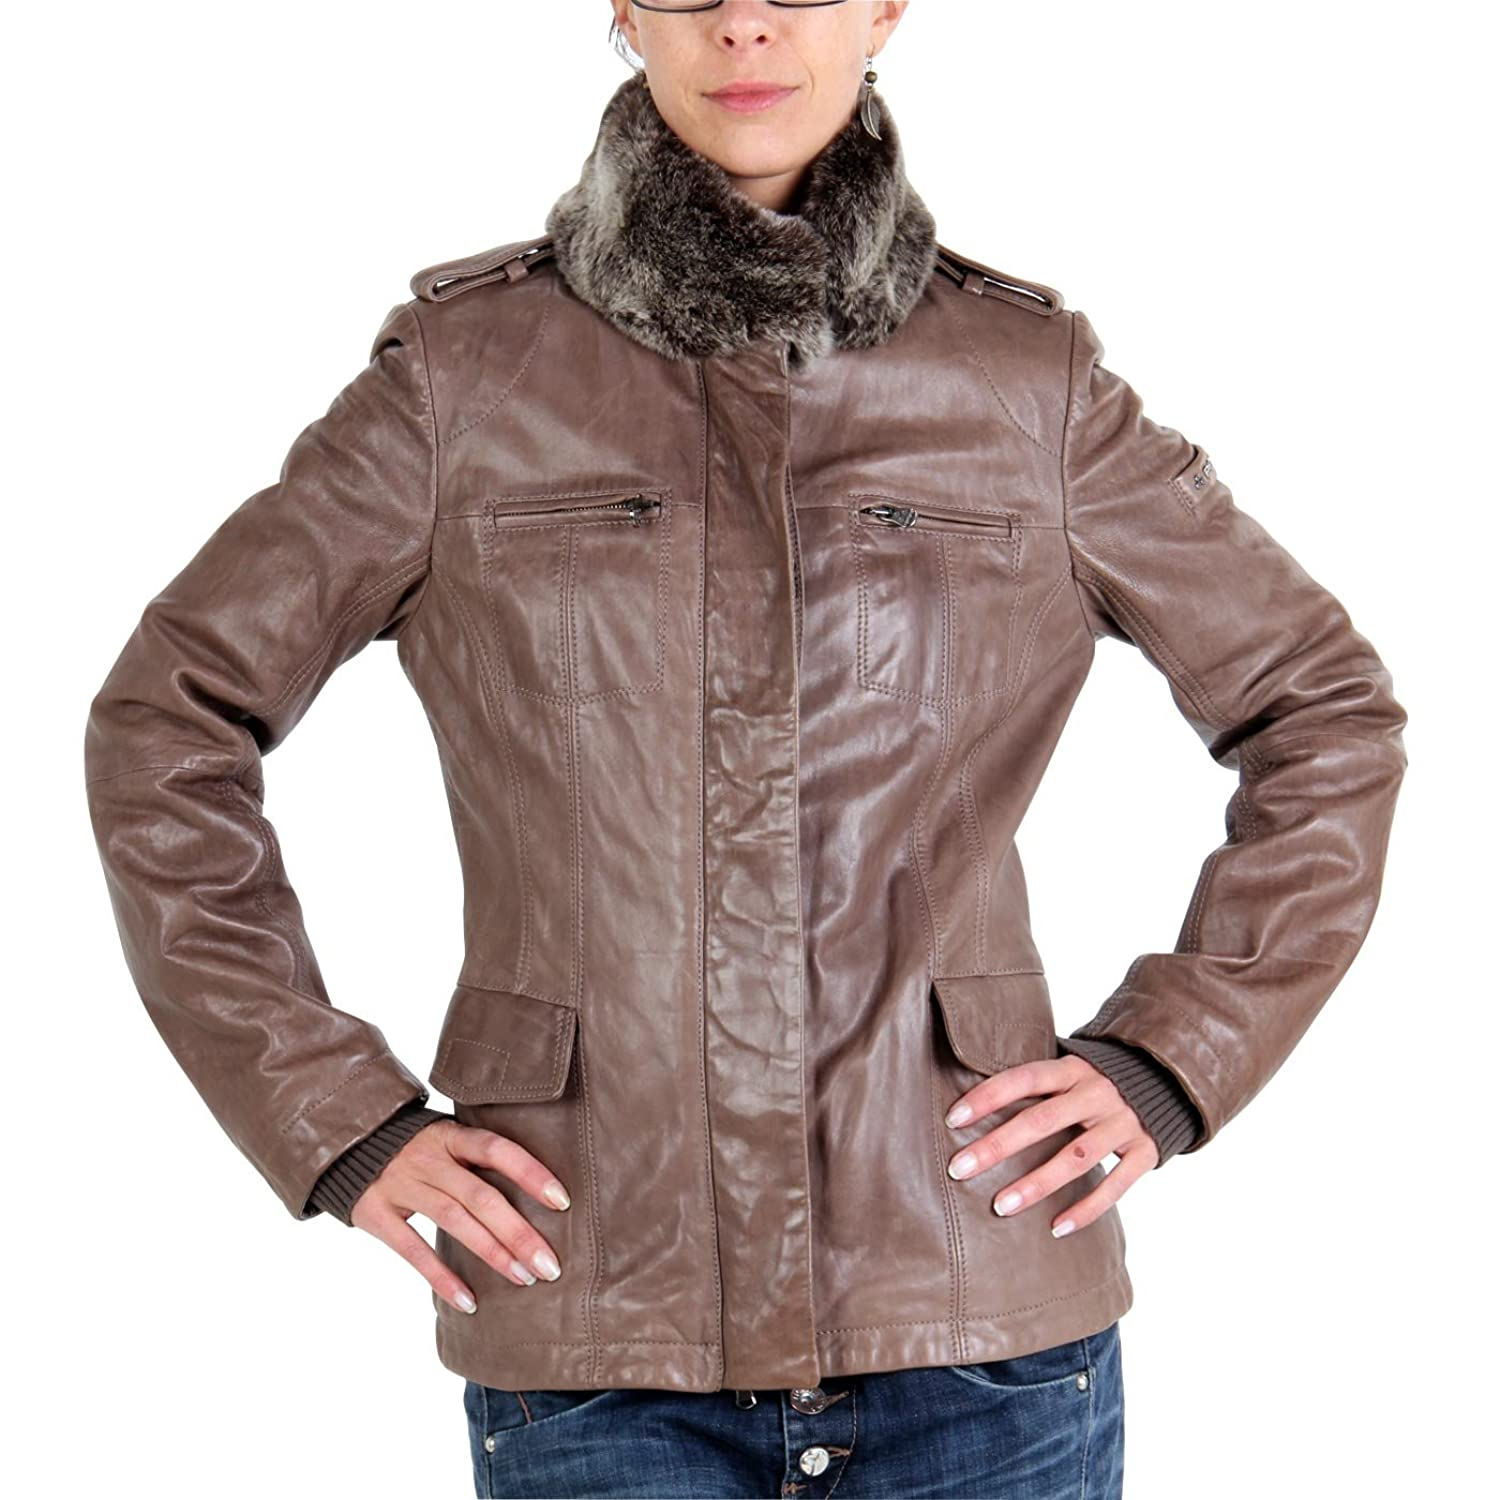 PEUTEREY Damen Winter Lederjacke Cindy Brown 2. Wahl kaufen